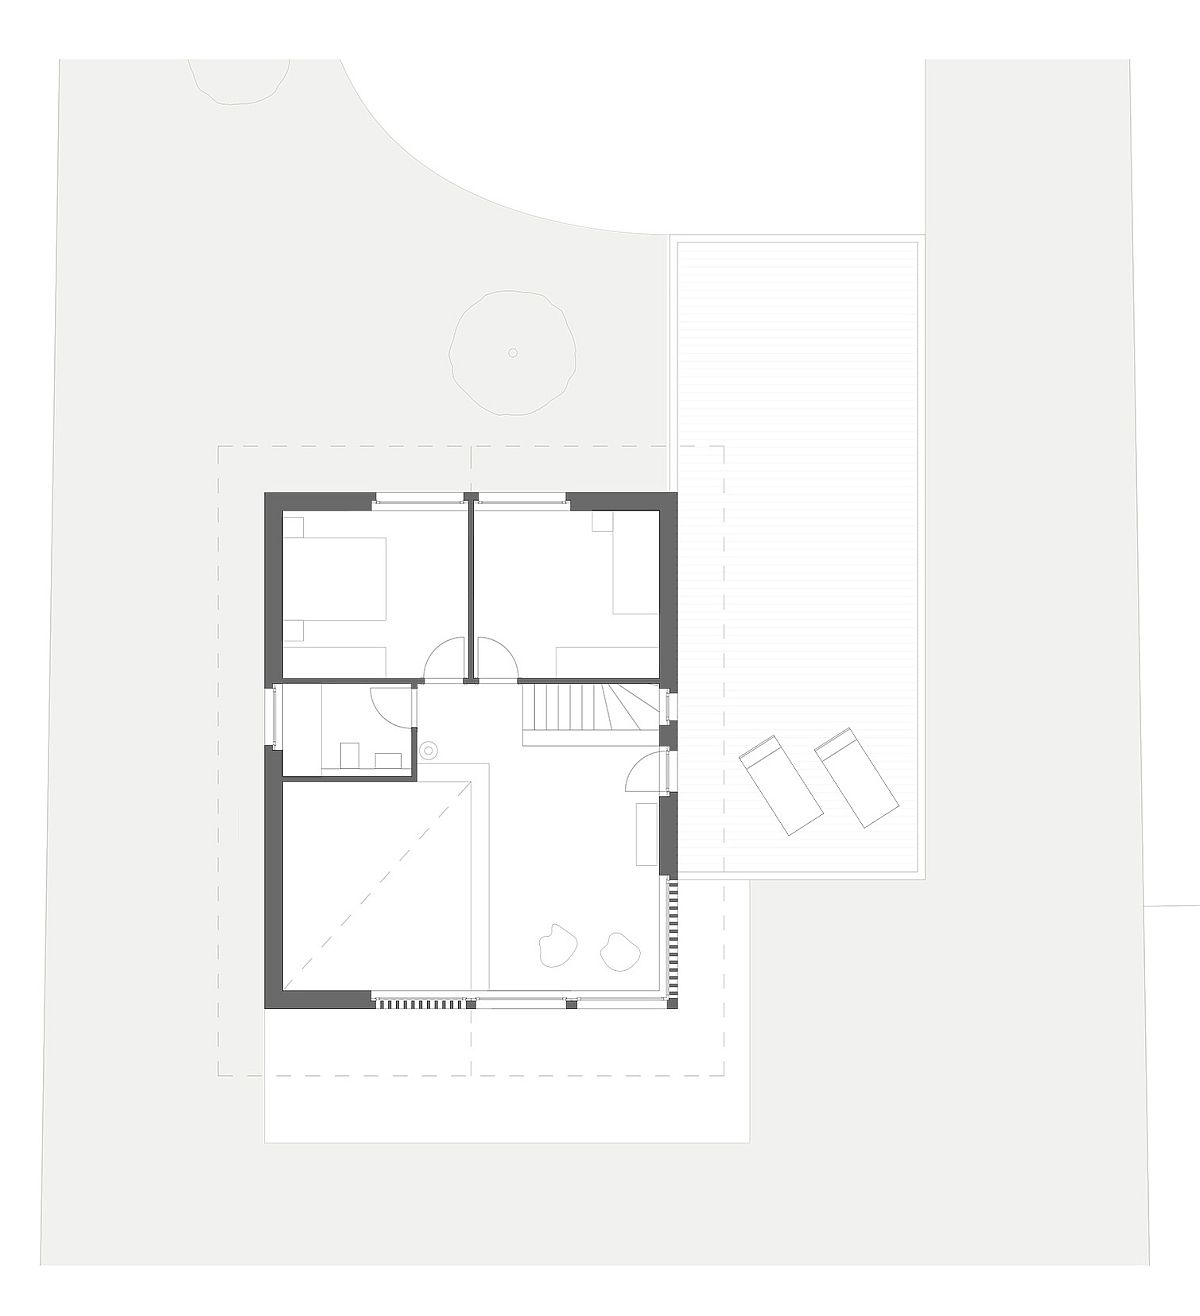 Upper-level-floor-plan-of-Swiss-home-with-valley-view